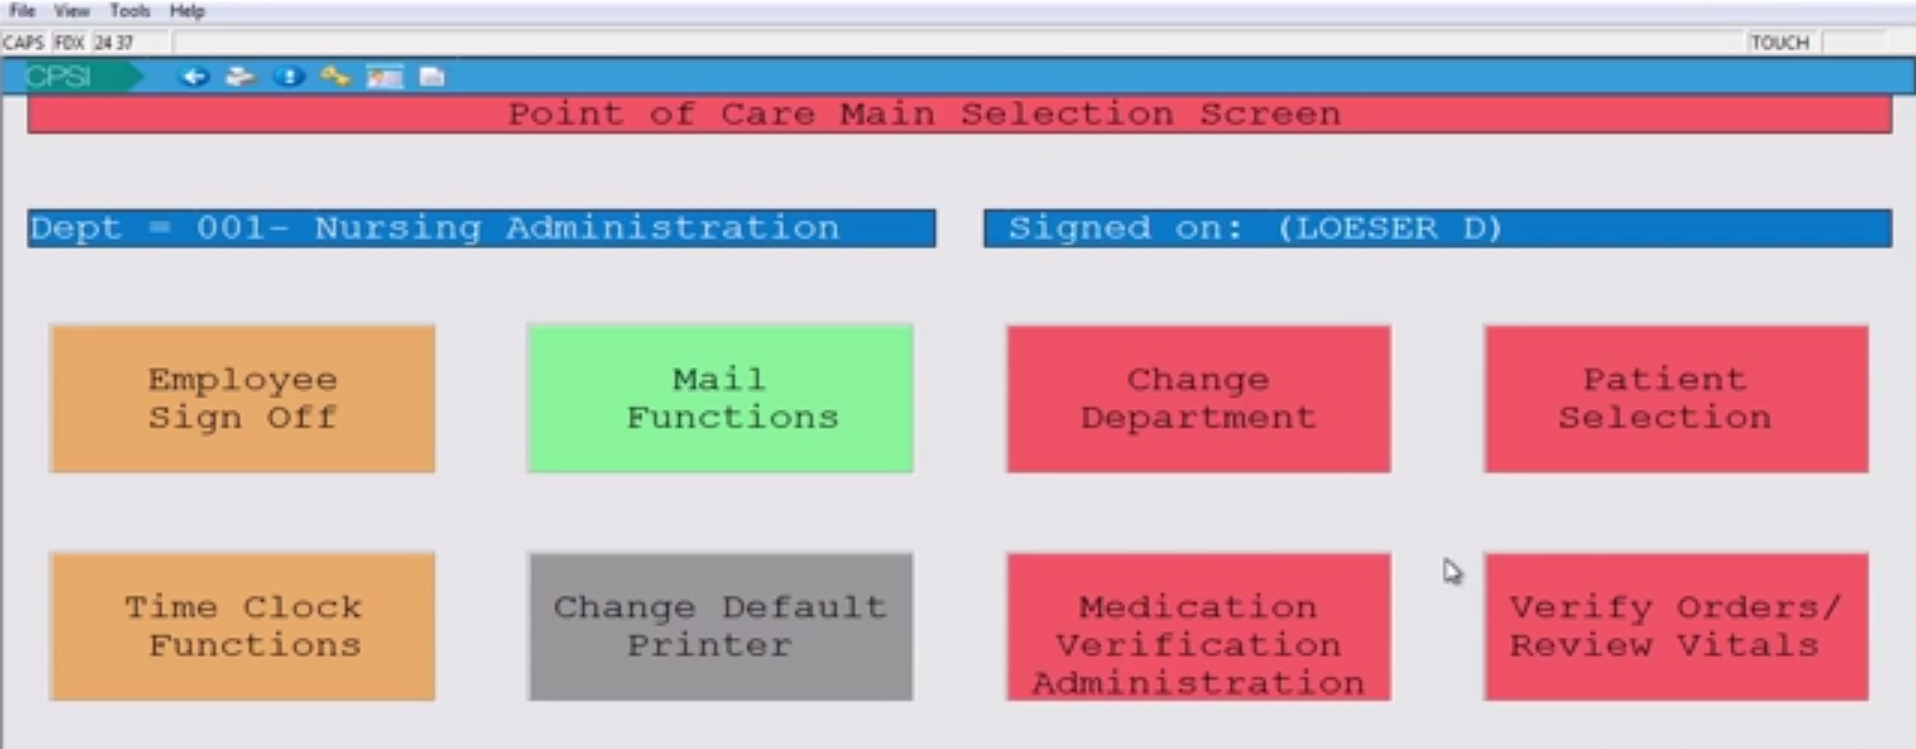 Point of care main screen